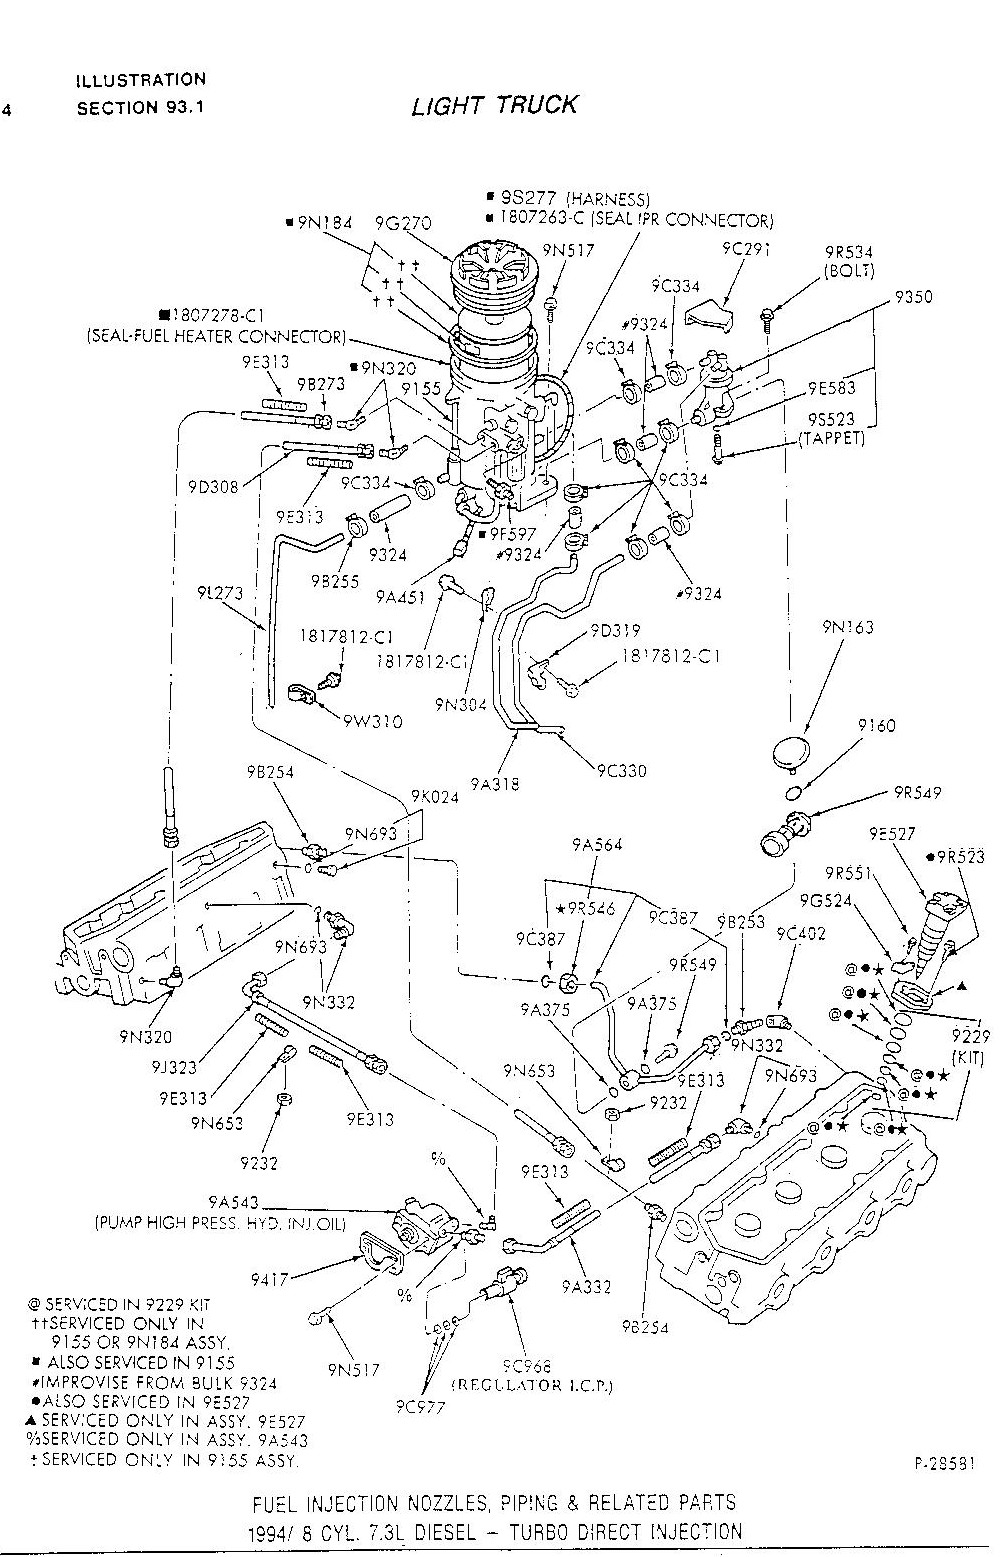 Engine Diagram Water Pump 1997 Ford F 250 Super Duty Wiring Library 350 Schematic Click Image For Larger Version Name P28581 Views 25034 Size 3808